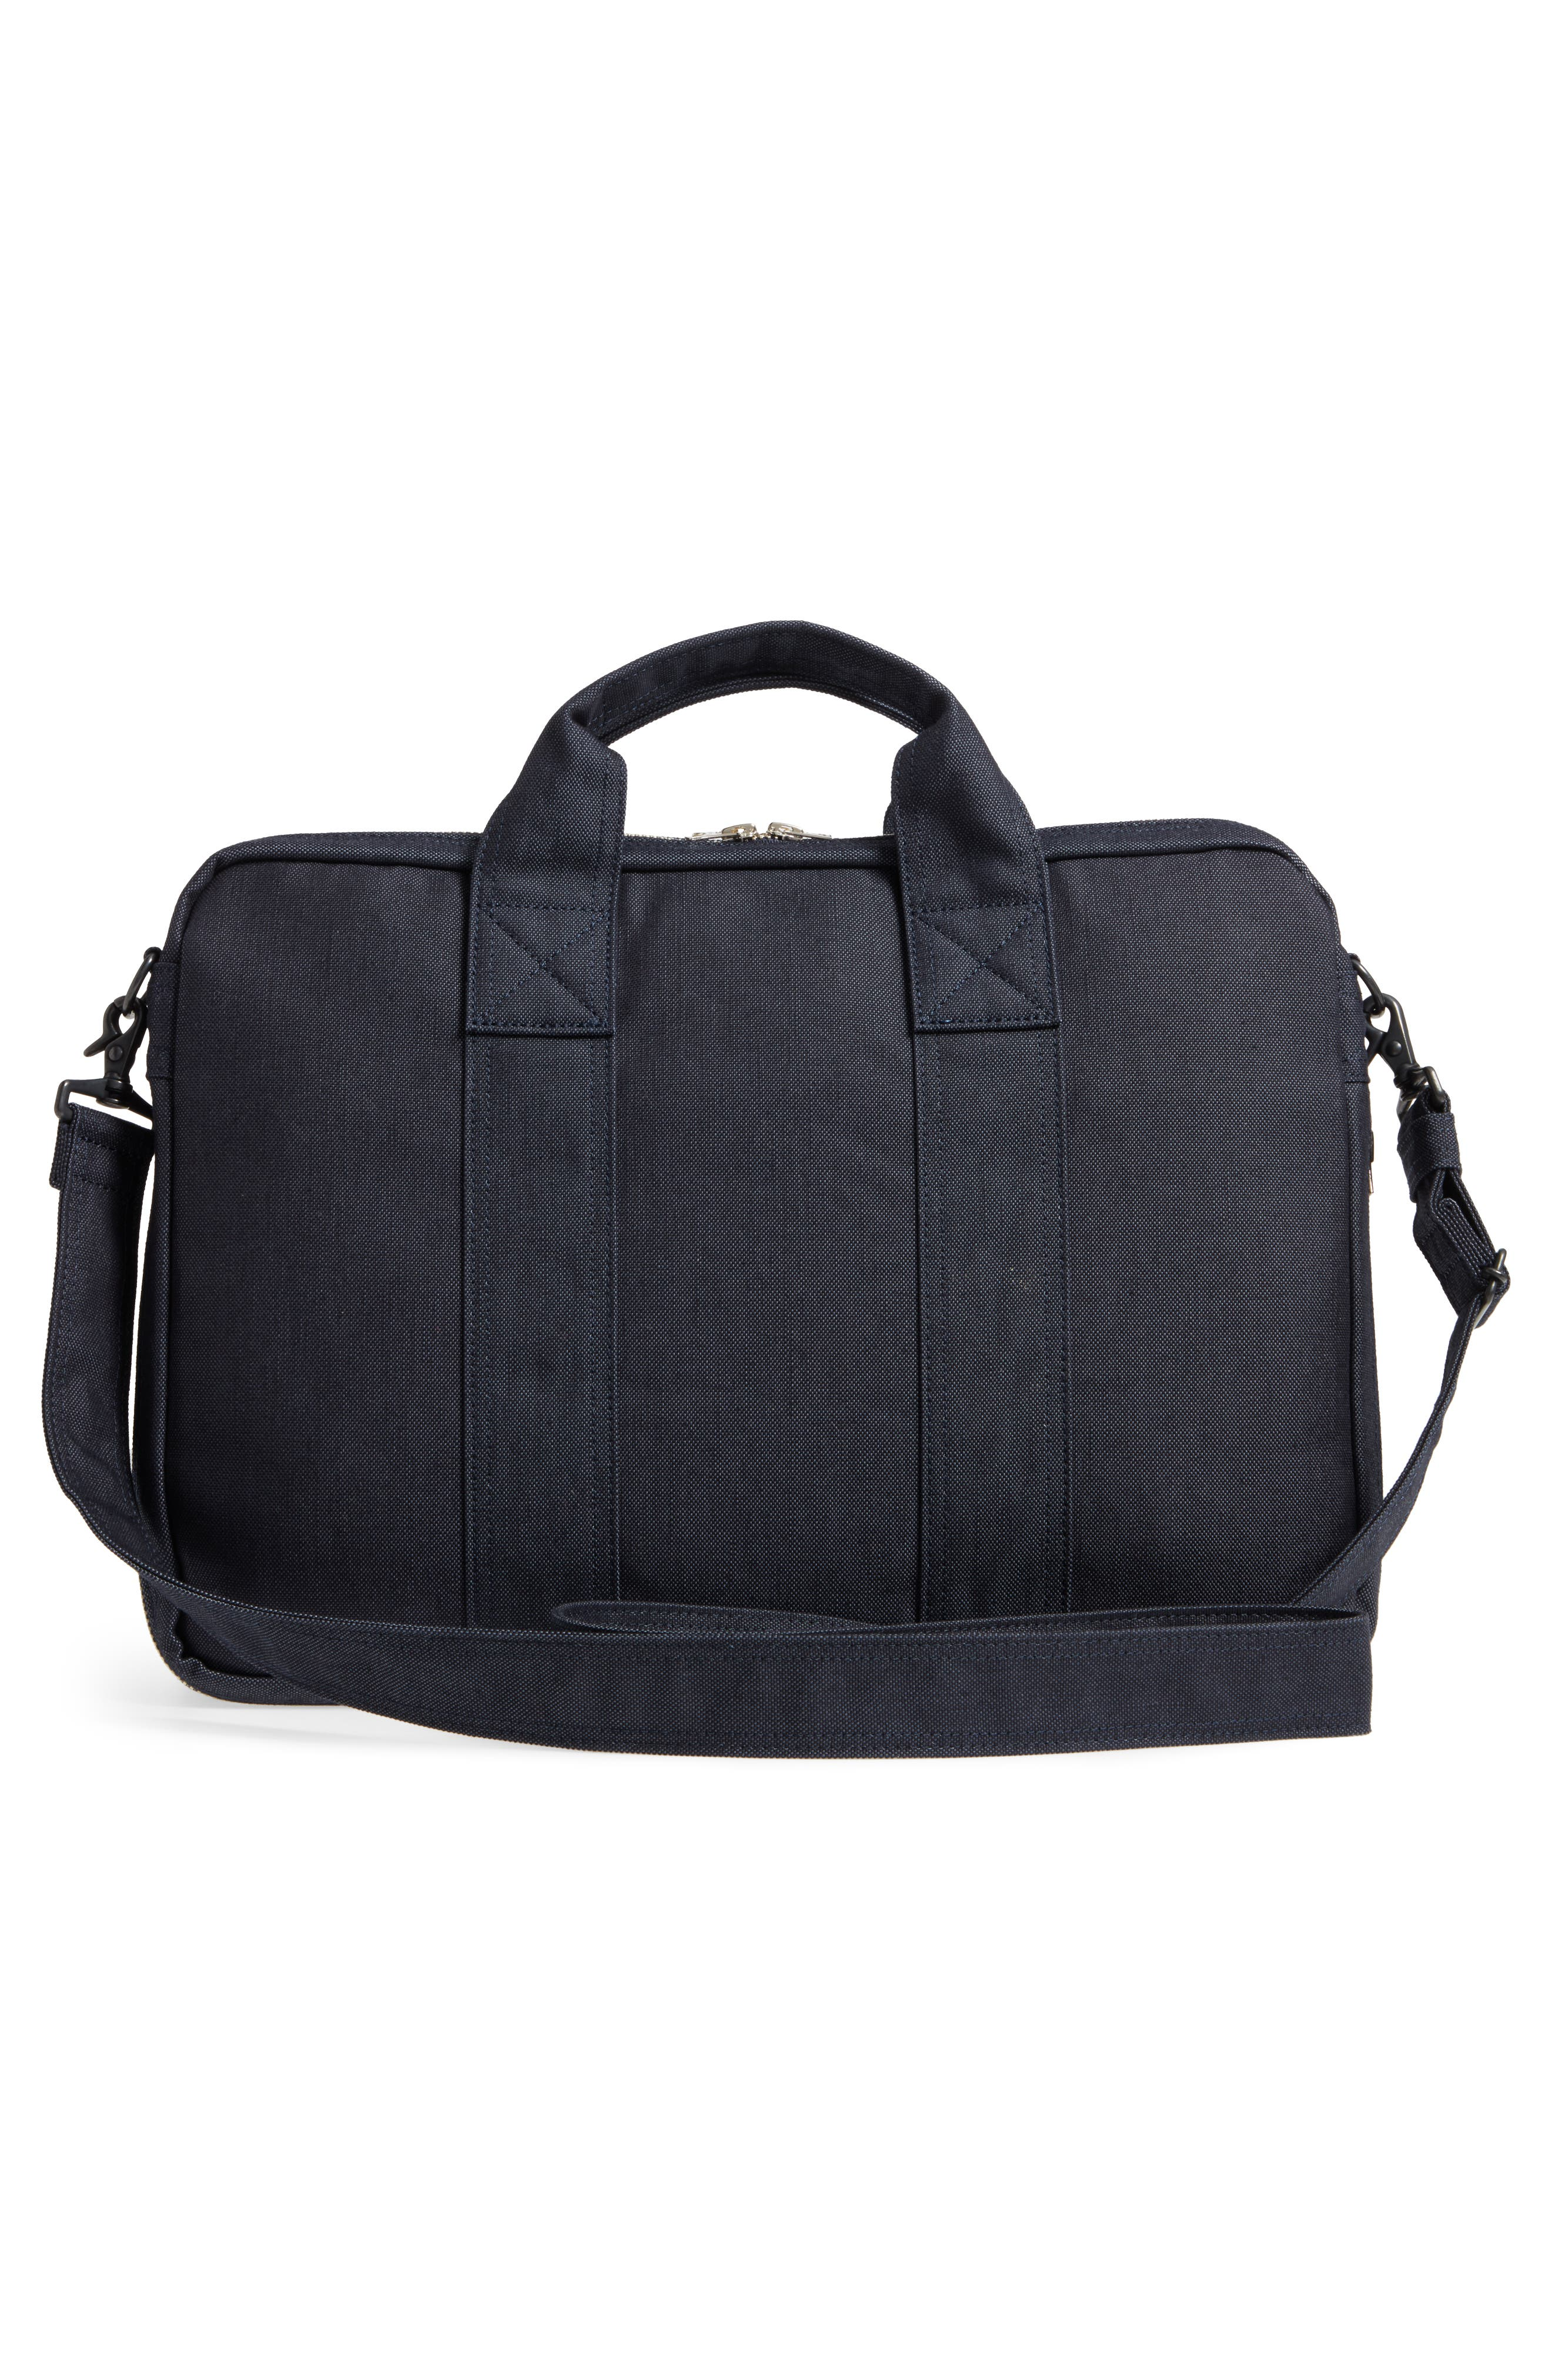 Porter-Yoshida & Co. Smoky Two-Way Briefcase,                             Alternate thumbnail 3, color,                             Navy